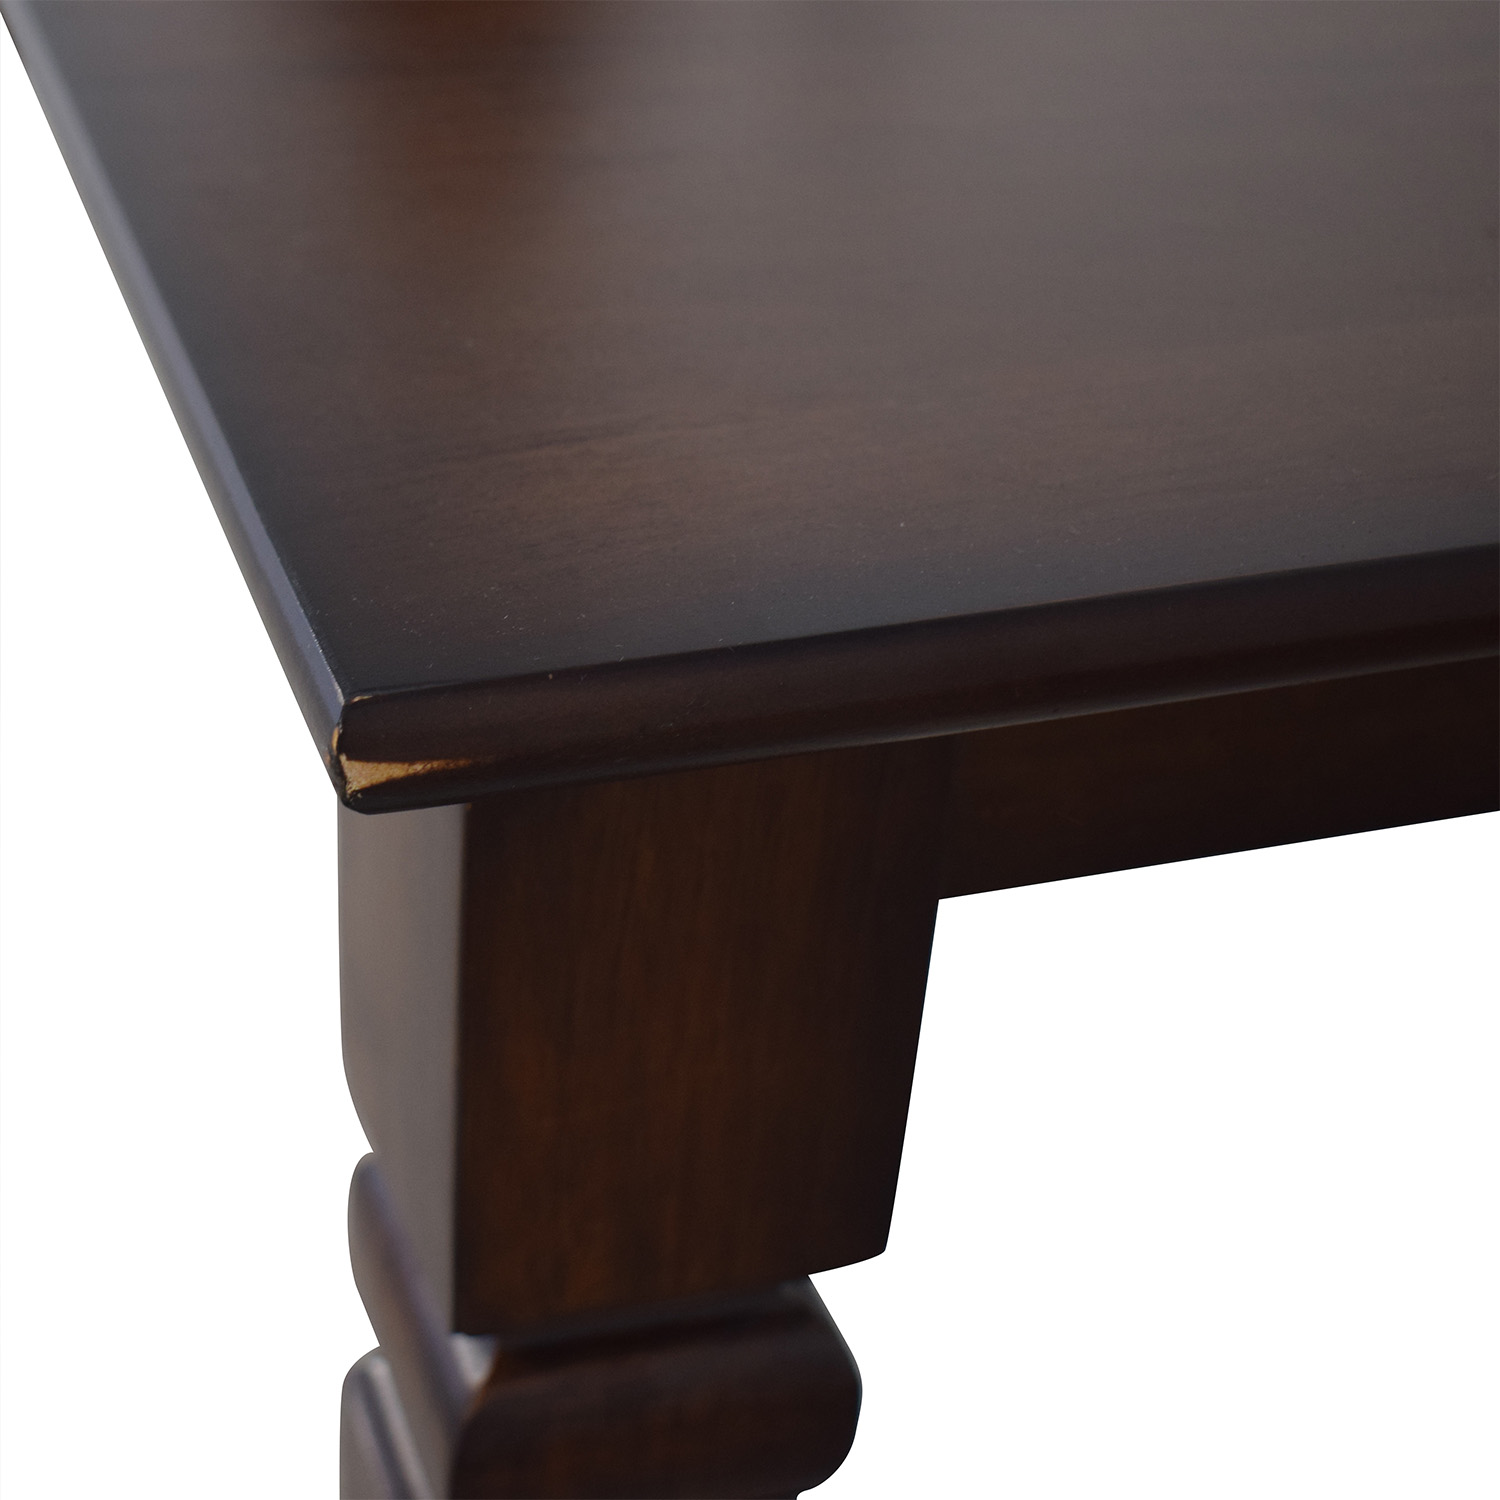 Pottery Barn Pottery Barn Extendable Dining Table used